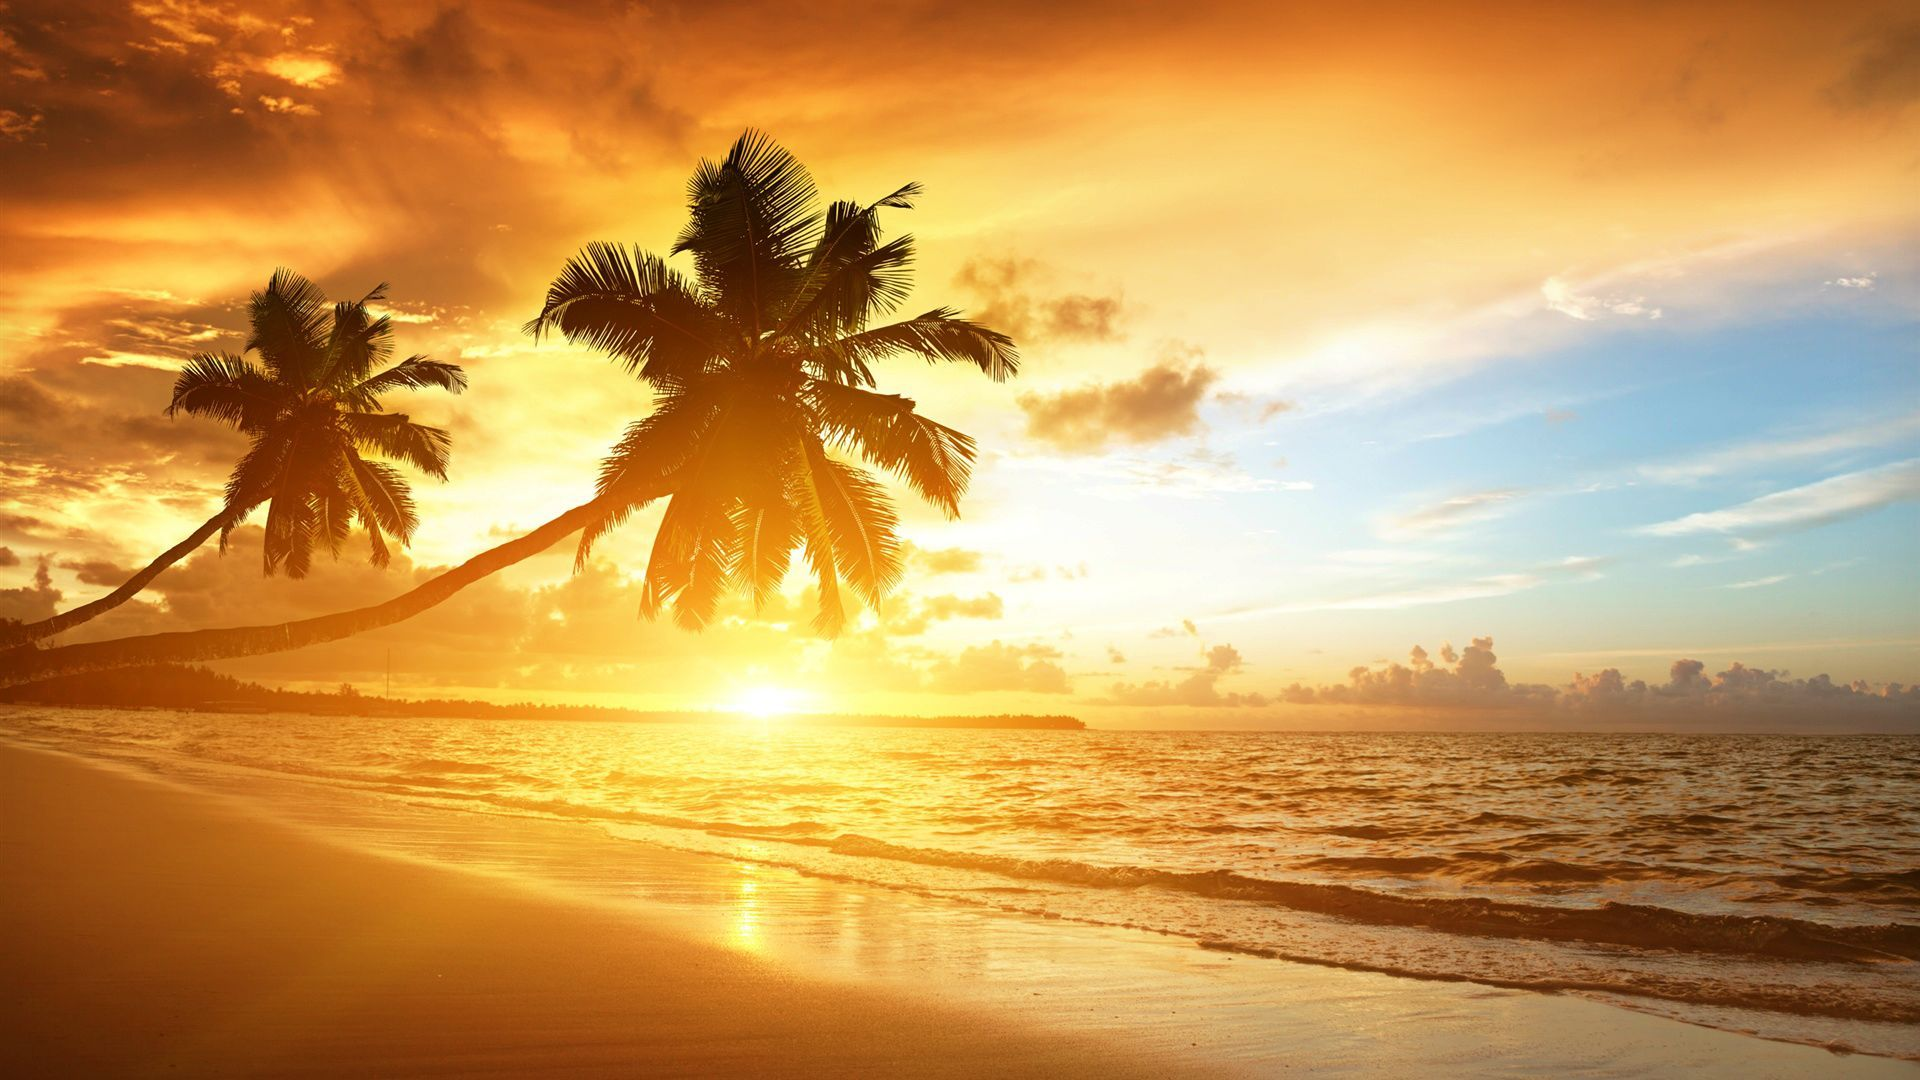 hd beach sunrise beautiful scenery wallpaper wallpapers